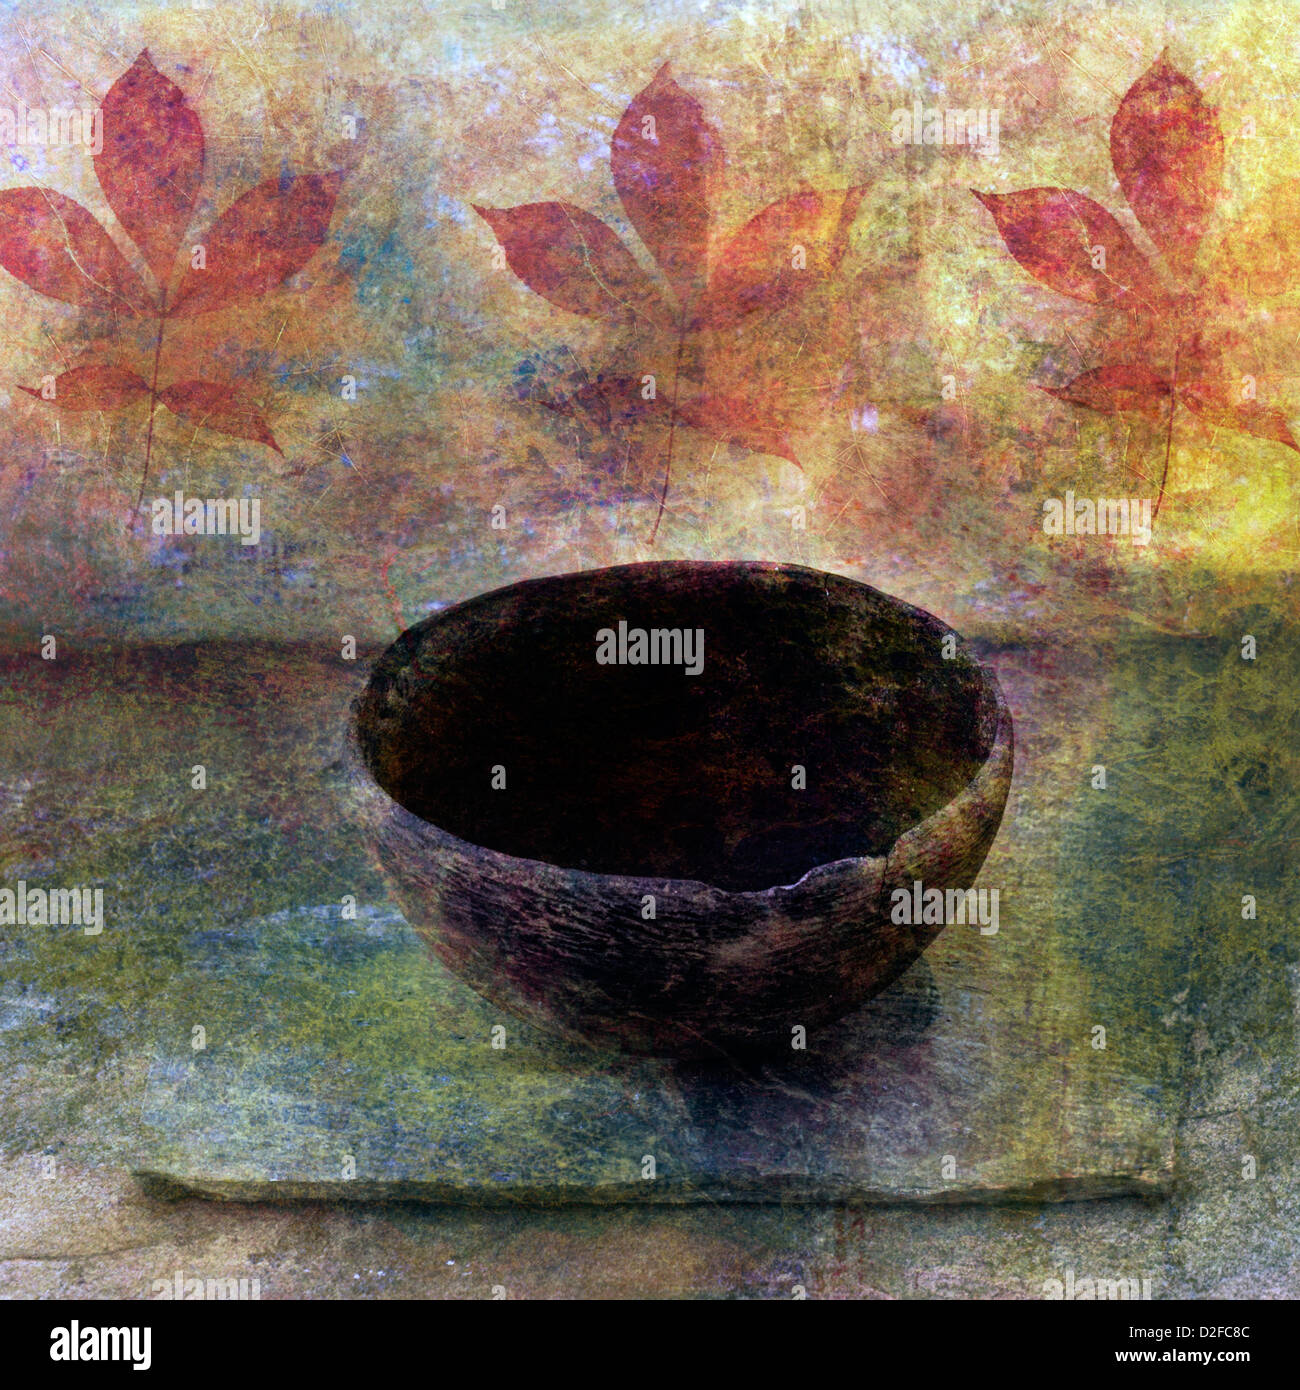 Empty ancient bowl in a still life setting. - Stock Image